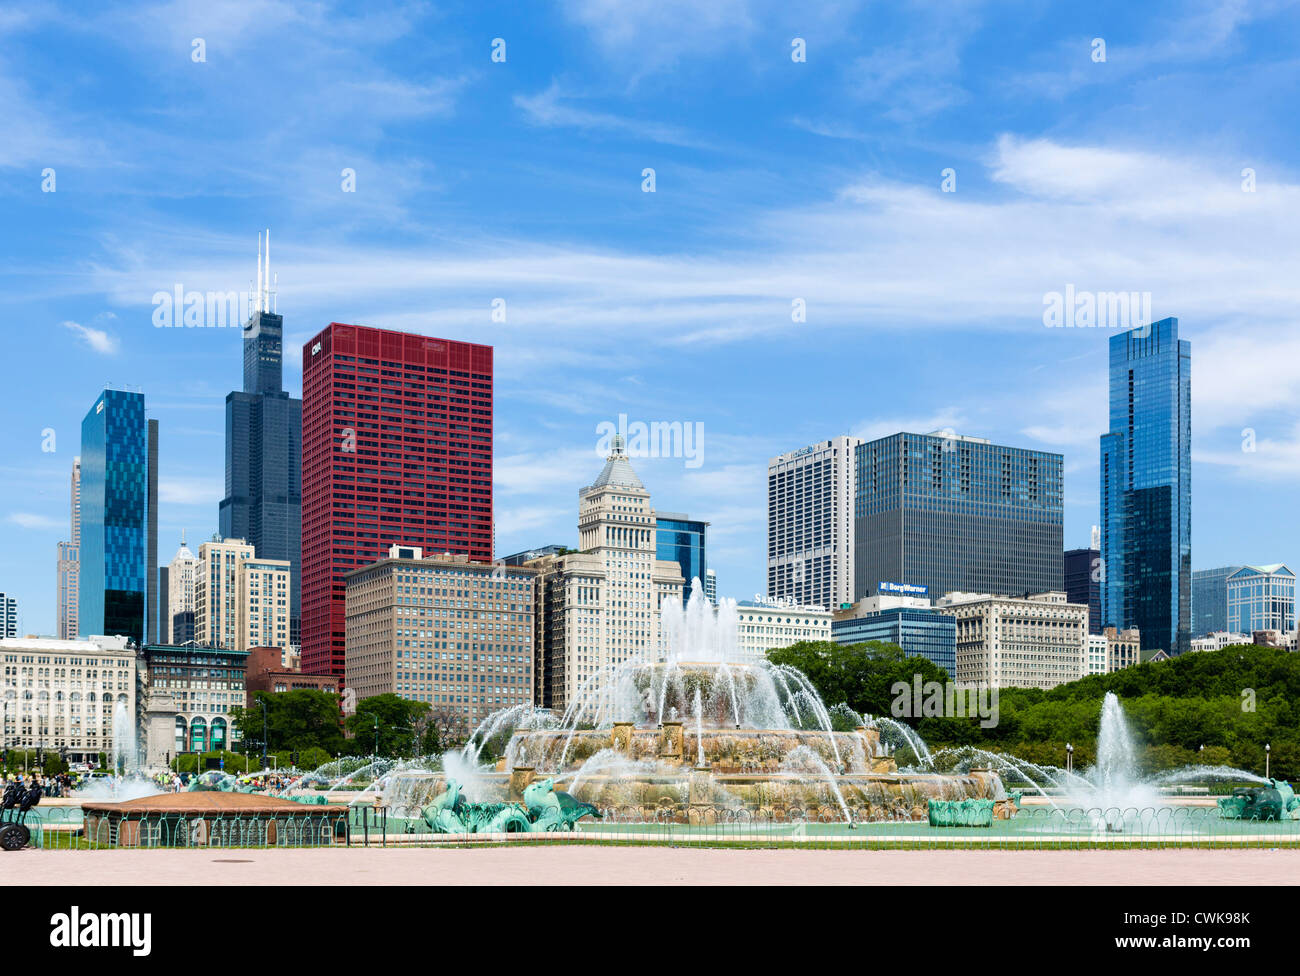 The Buckingham Fountain in front of the downtown city skyline, Grant Park, Chicago, Illinois, USA - Stock Image